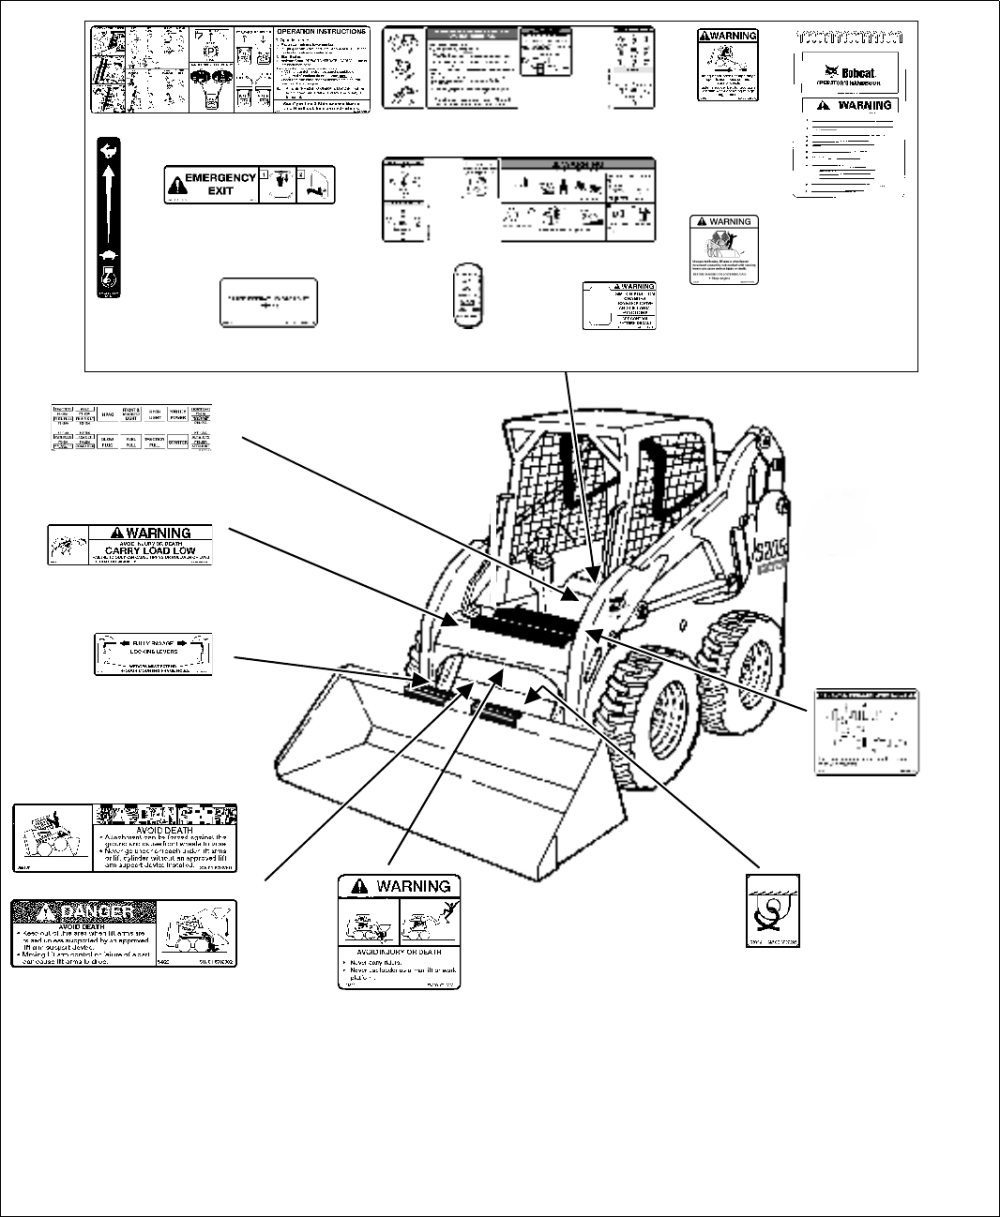 medium resolution of bobcat fuse box wiring diagram bobcat t190 fuse panel diagram bobcat fuse box location wiring diagram